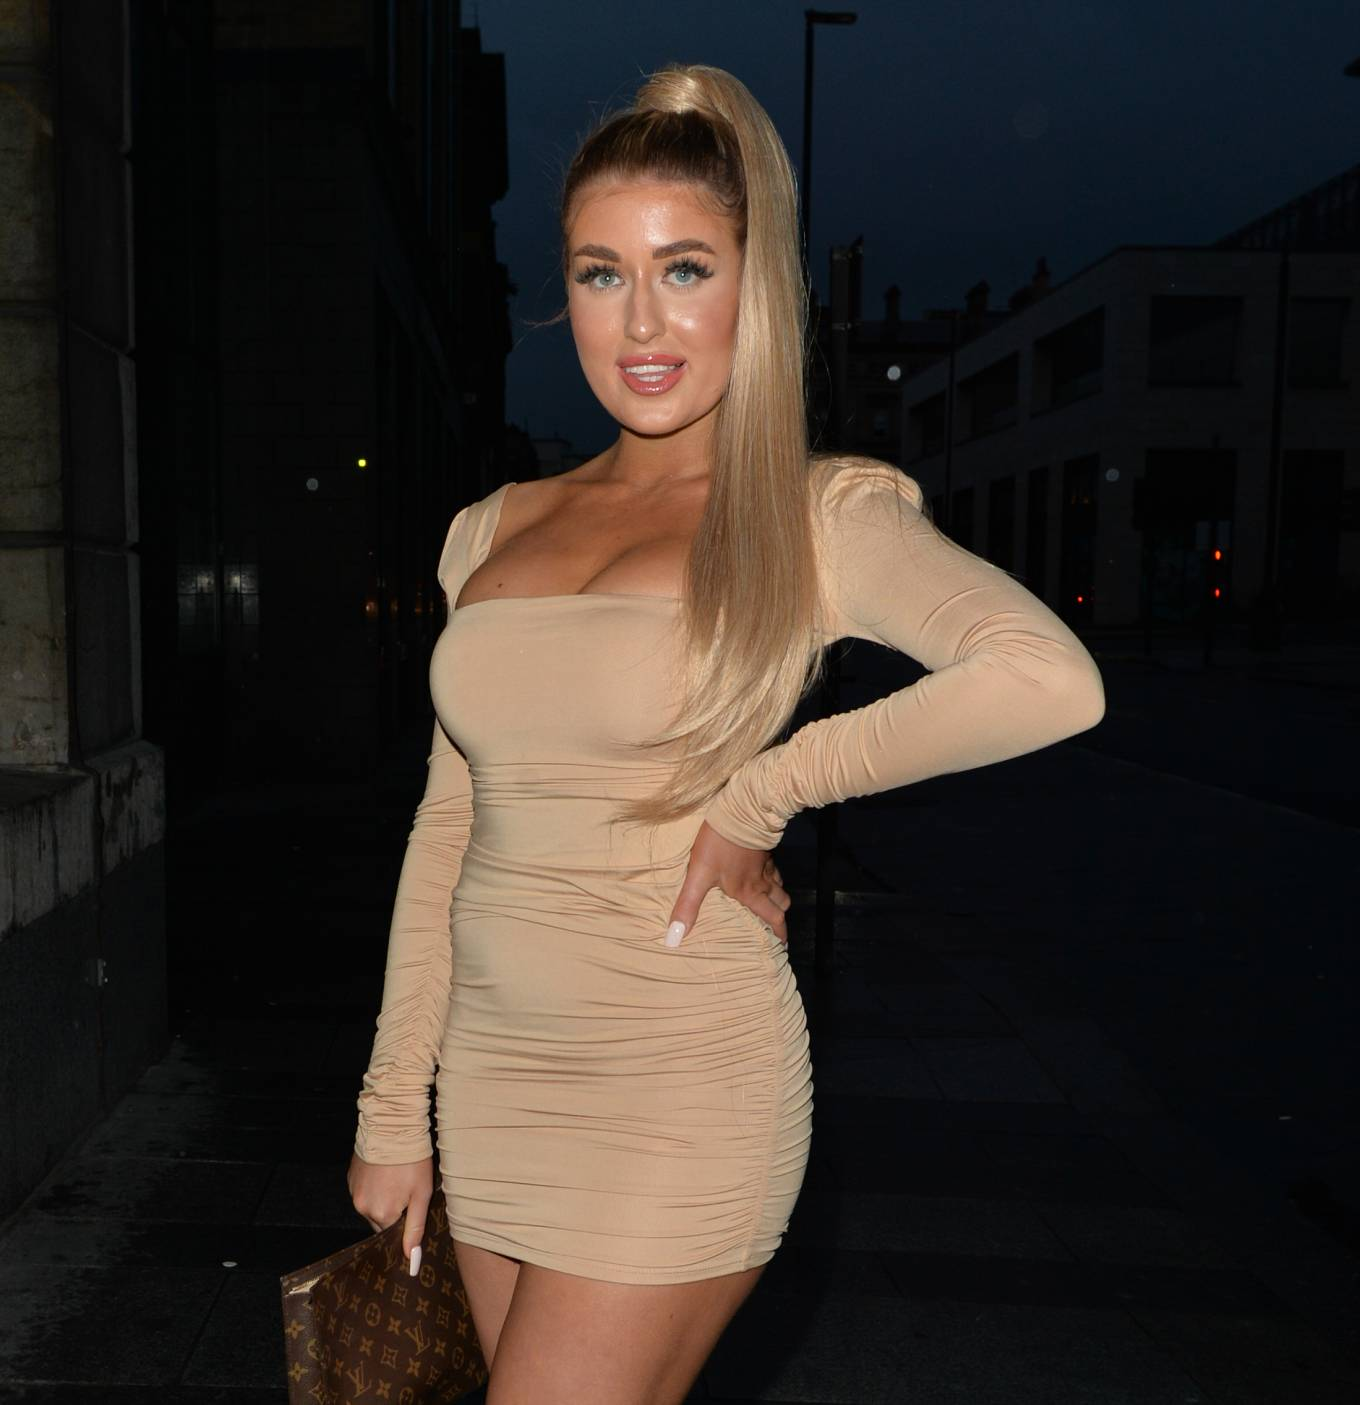 Eve Gale 2020 : Jess and Eve Gale – Night out for dinner in Liverpool -15